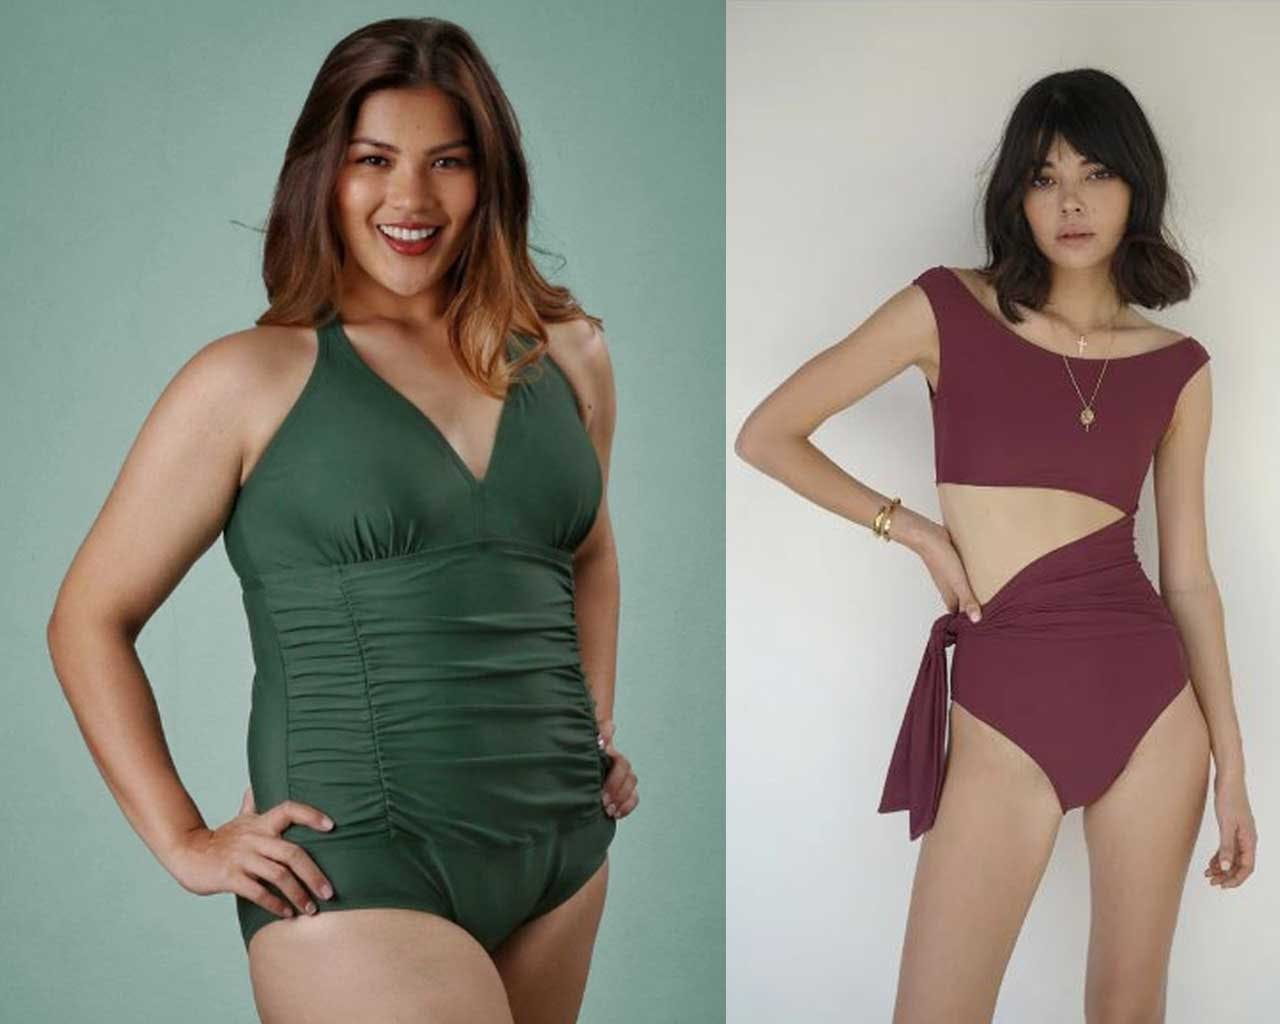 9 Figure-flattering Swimsuits For Real Women: How To Highlight Your Body's Best Assets